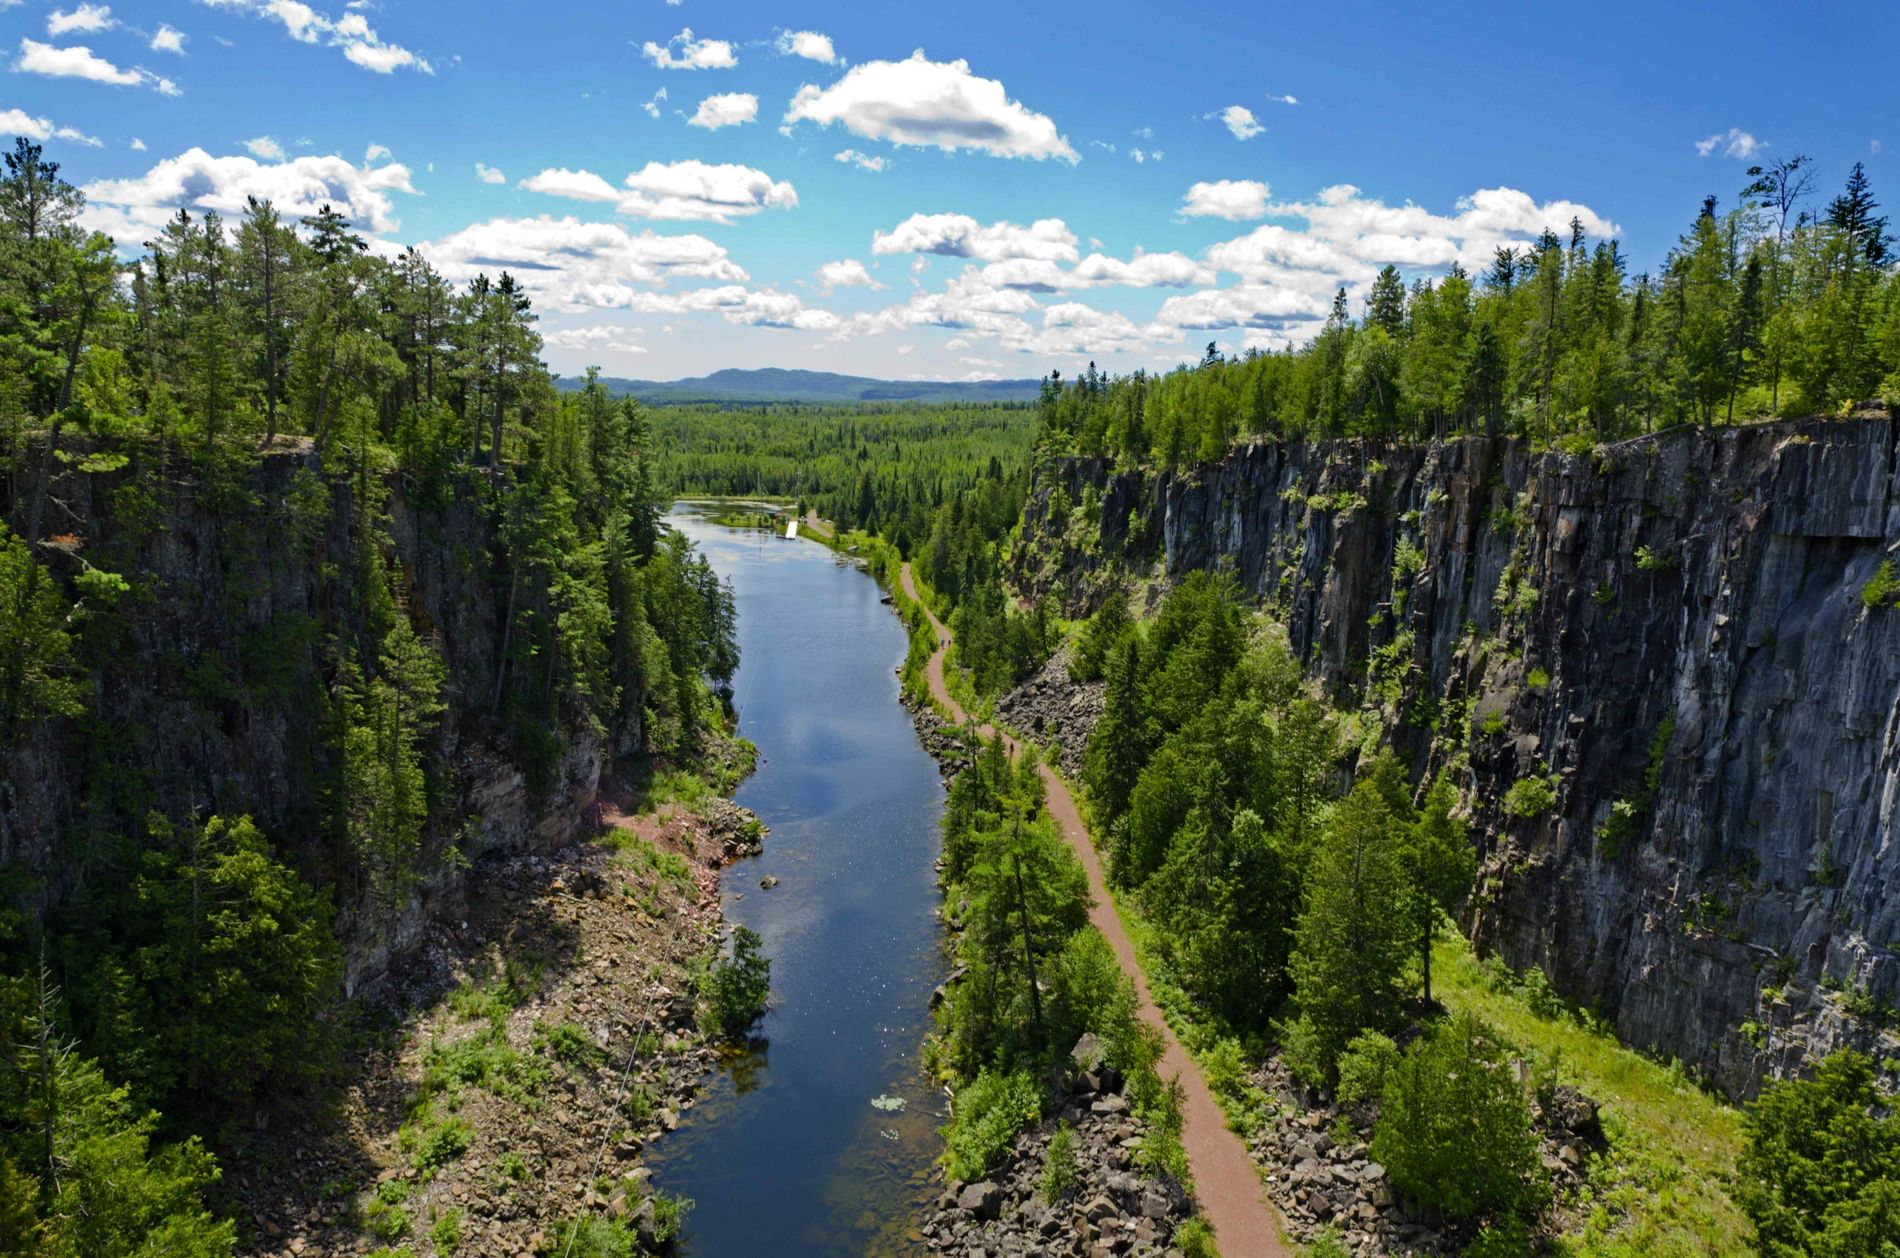 View of a canyon near Thunder Bay, north of Lake Superior.